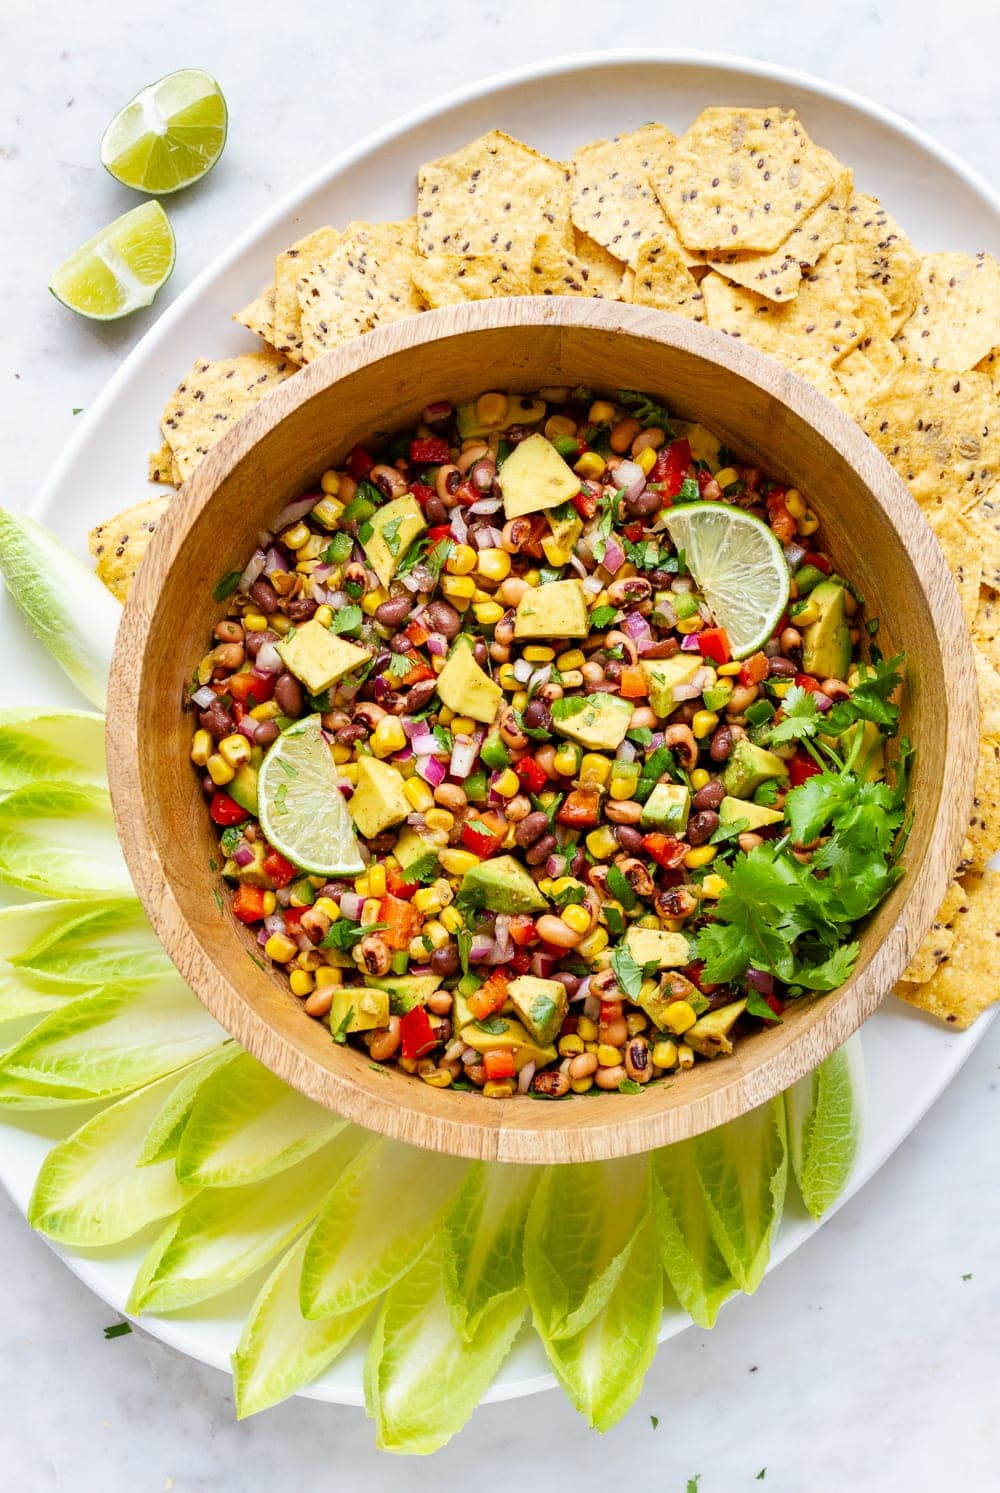 top down view of a platter with bowl full of Texas cowboy caviar surrounded by endive and tortilla chips for scooping.